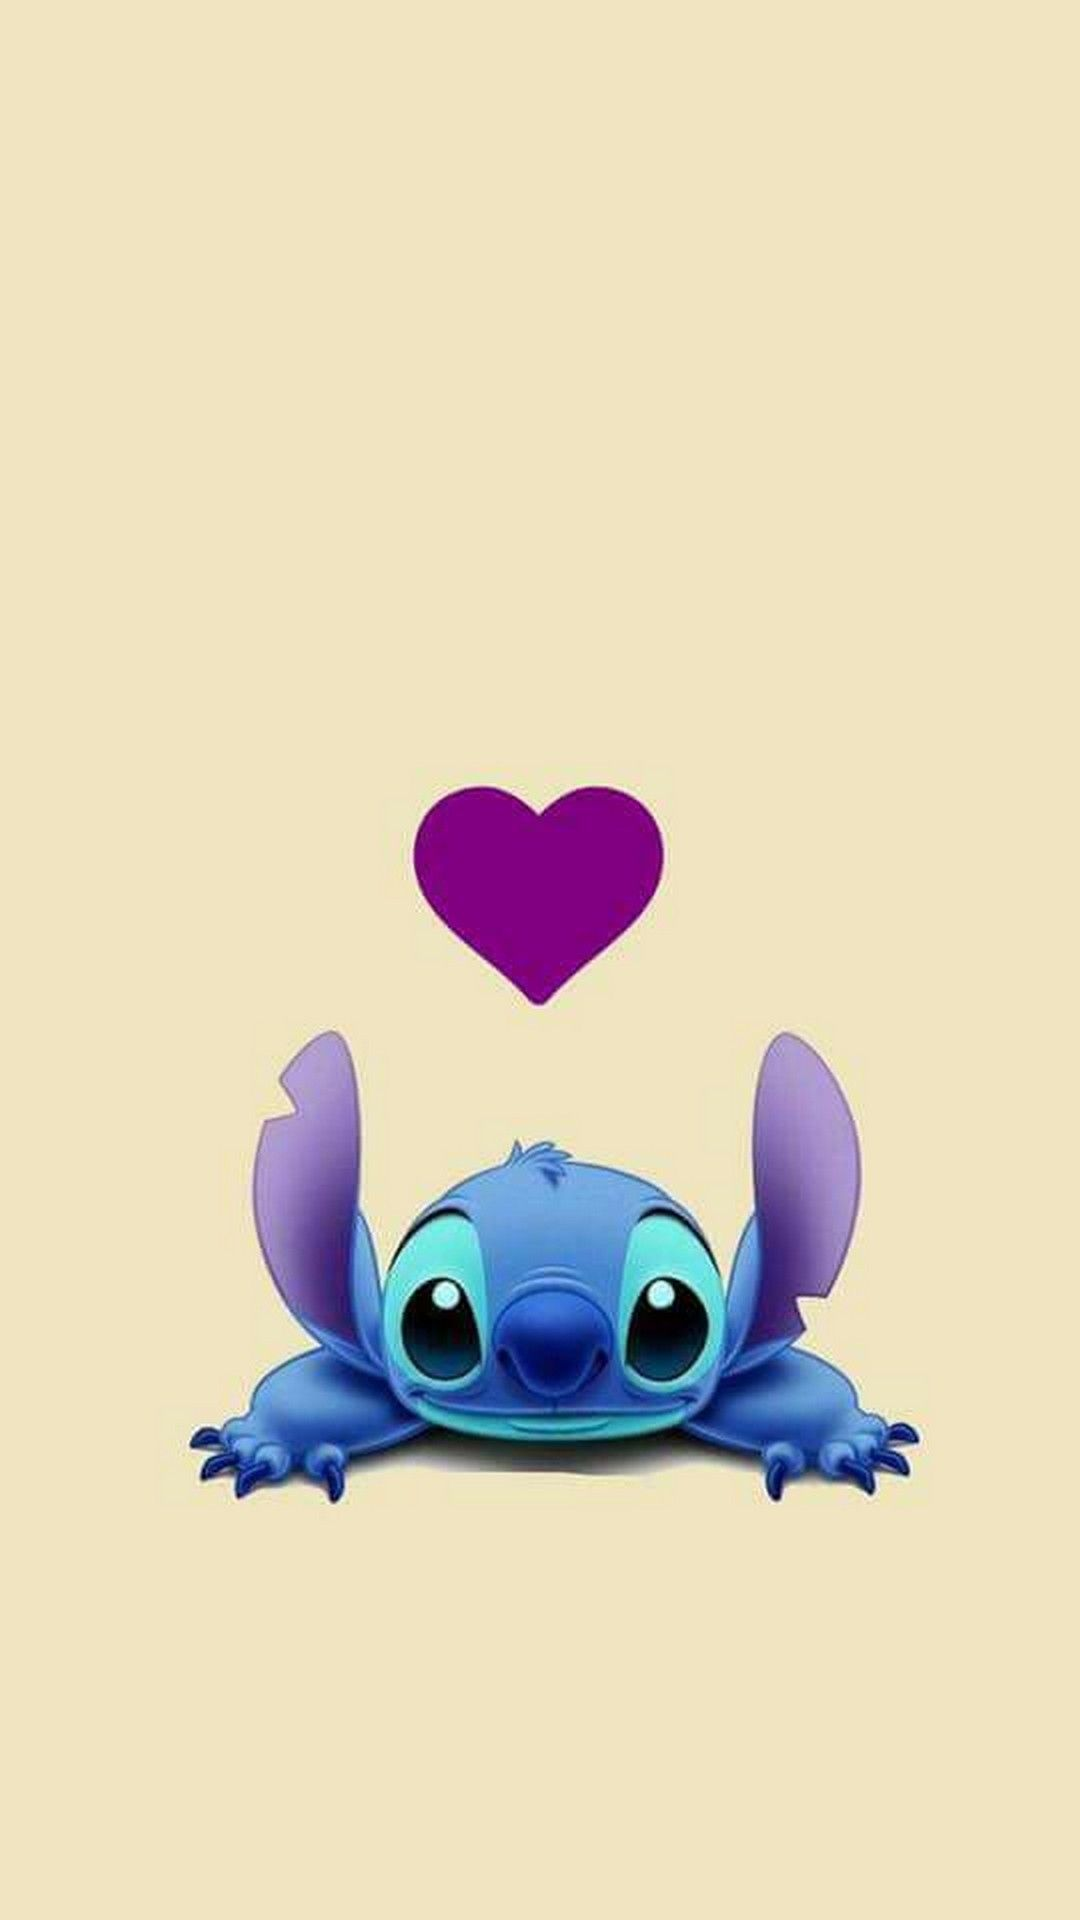 Stitch Iphone Wallpaper Hd Is Best High Definition Wallpaper Image